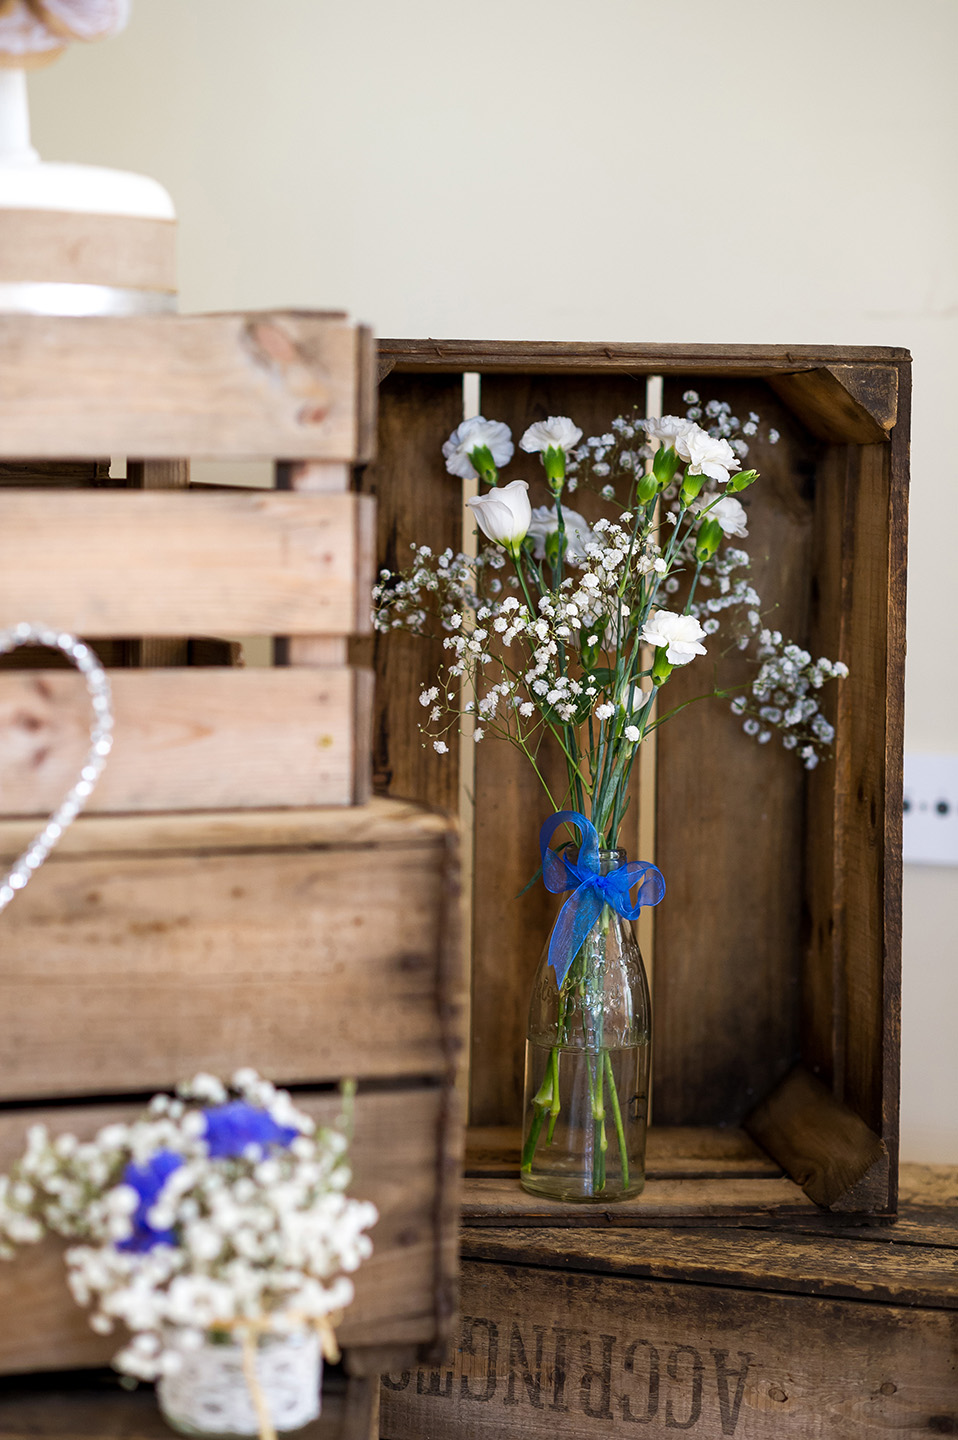 Apple crates were stacked and decorated with wedding flowers